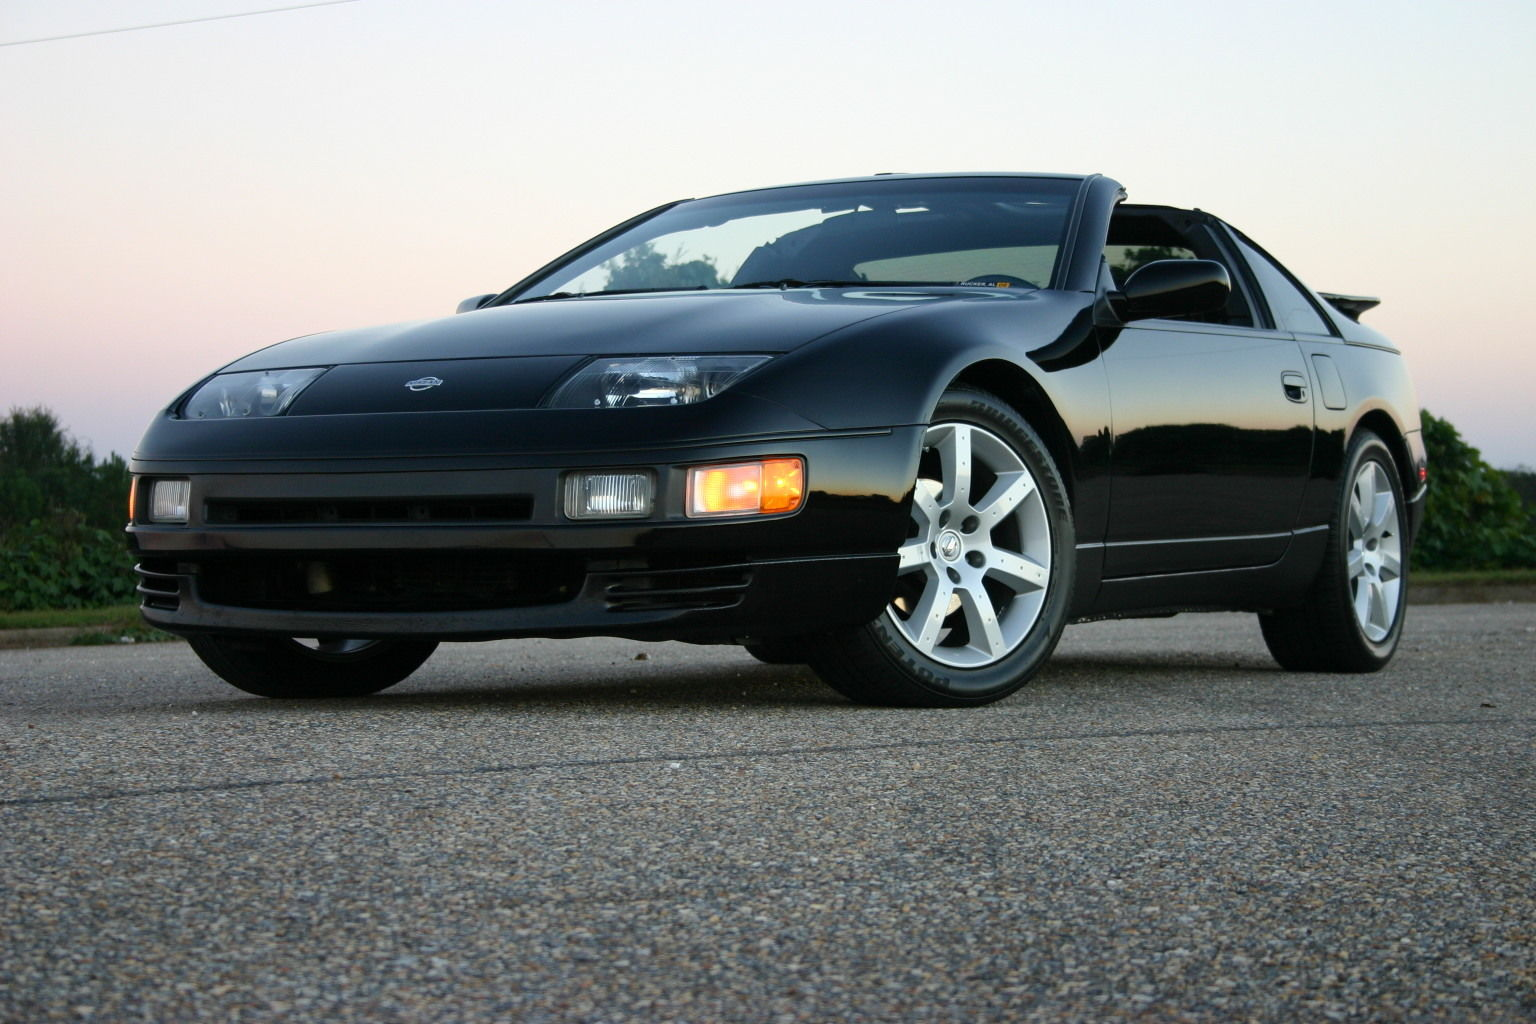 Nissan 300zx For Sale >> 1994 Nissan 300ZX Twin Turbo (Collectors Show Car) - Classic Nissan 300ZX 1994 for sale